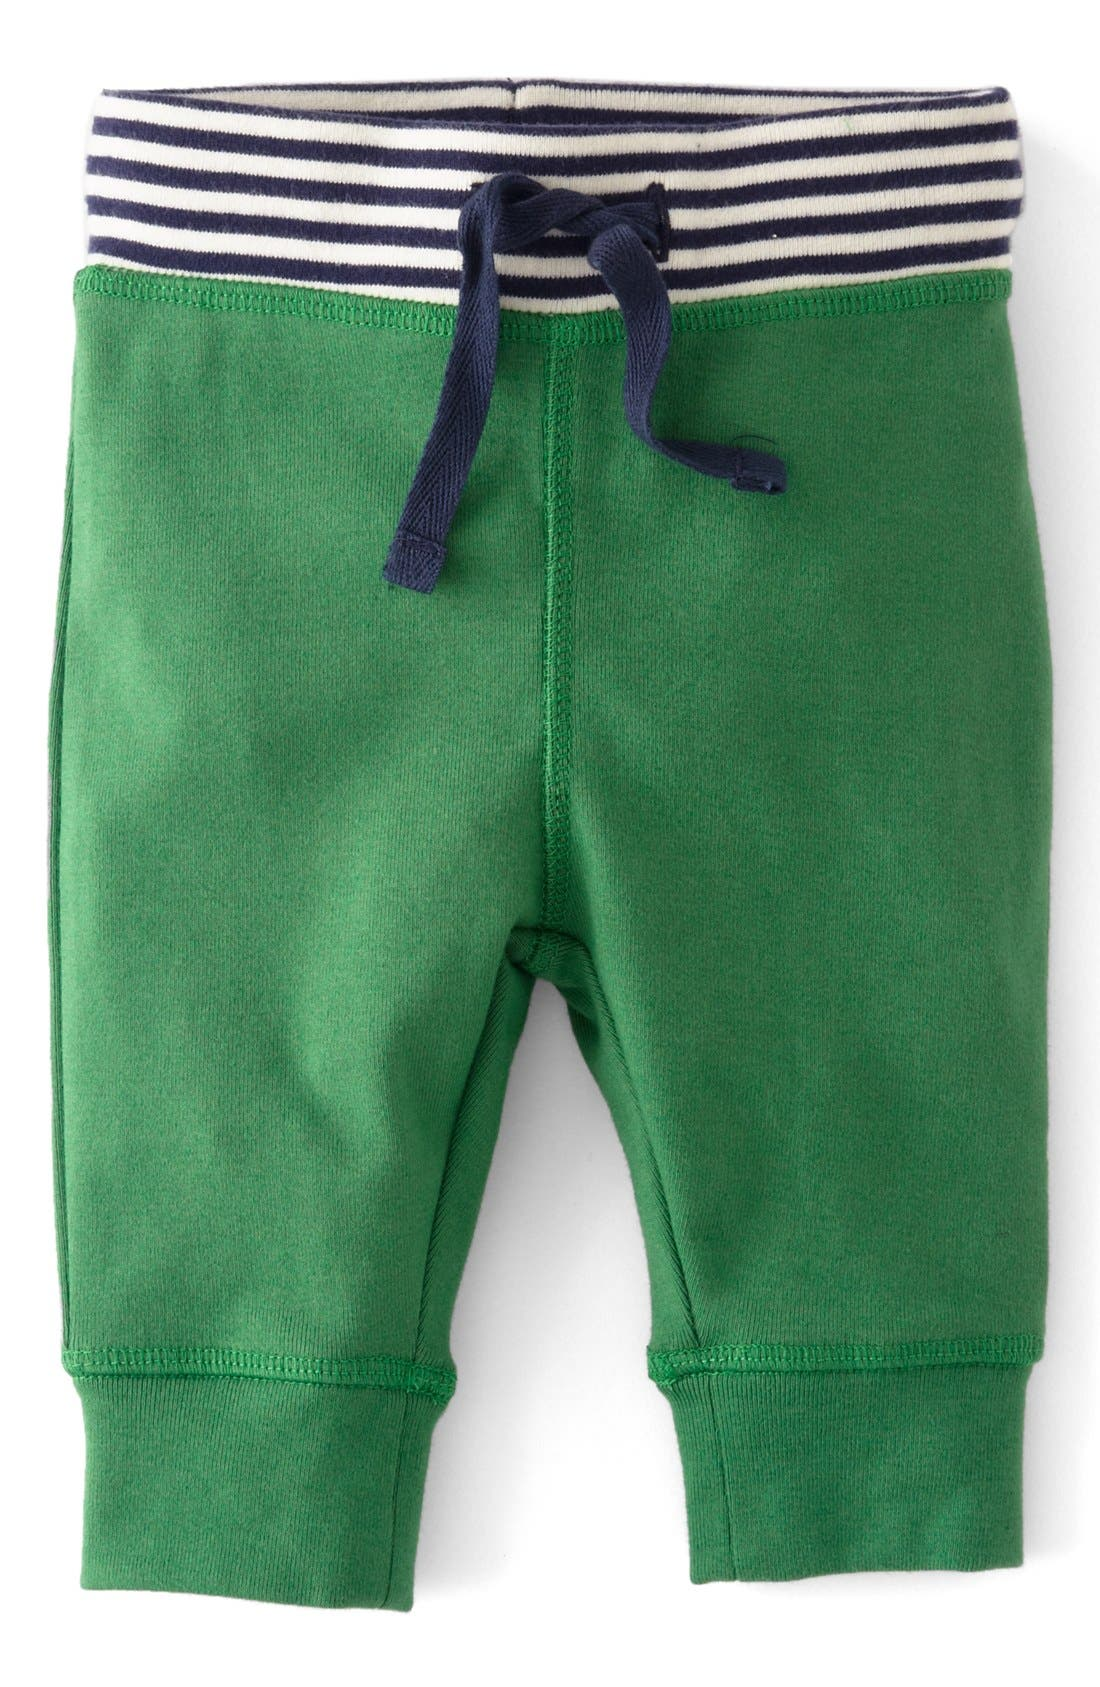 Main Image - Mini Boden 'Essential' Cotton Jersey Pants (Baby Boys)